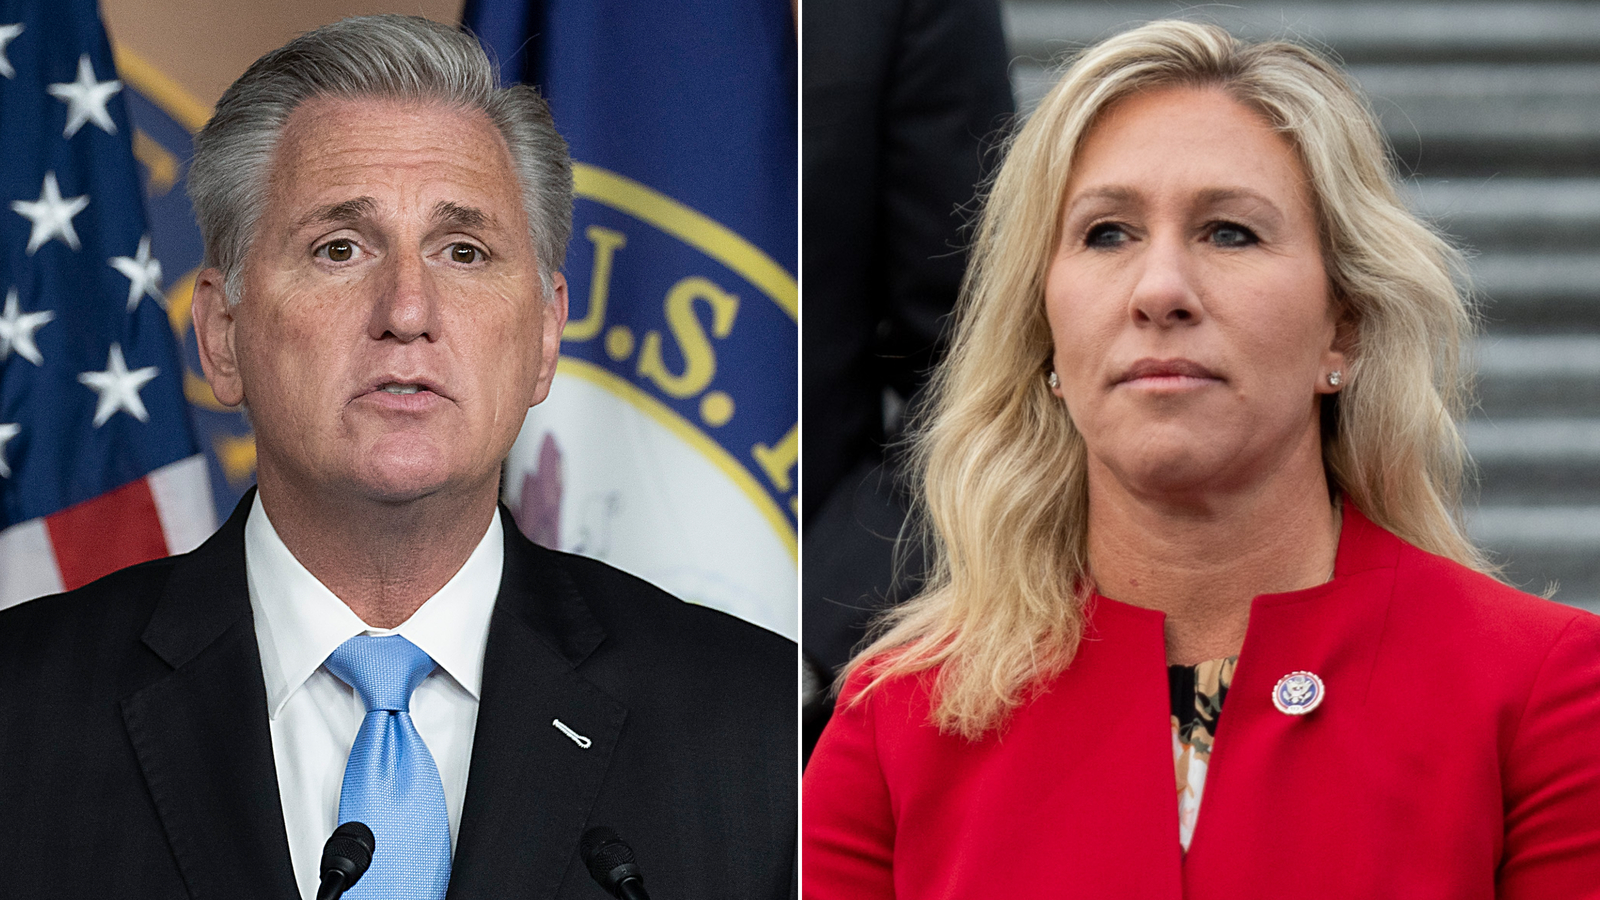 House Democrats call on McCarthy to 'take immediate action' to address Greene's behavior